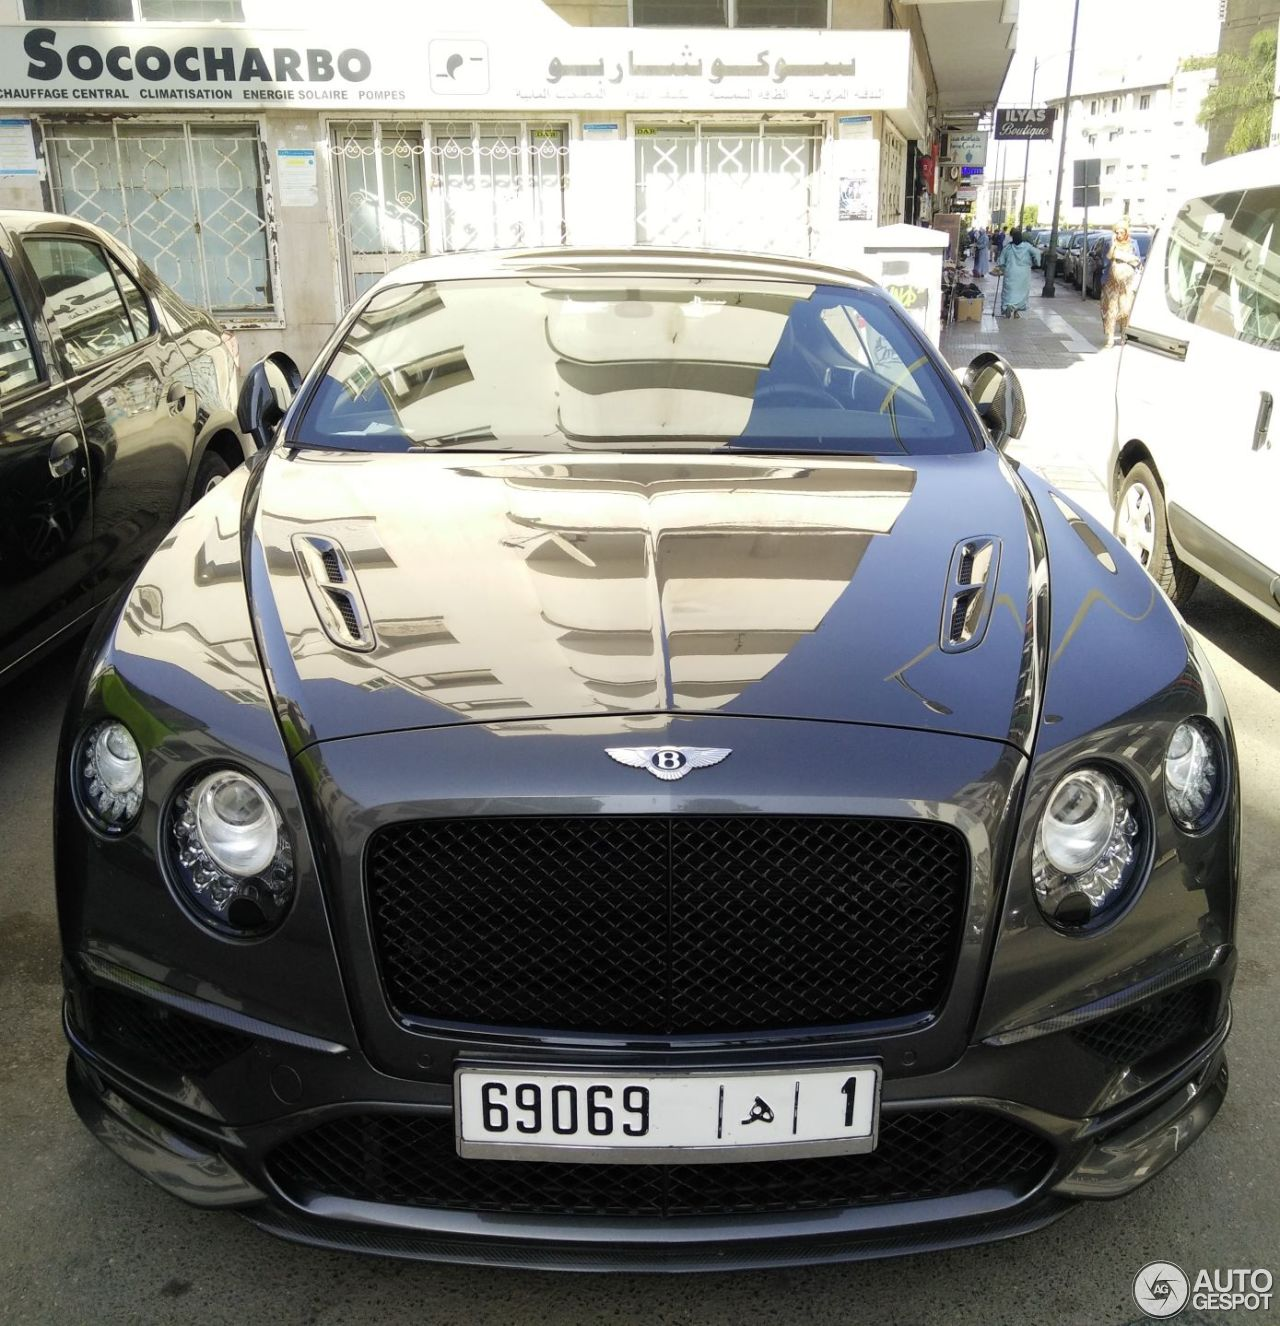 Bentley Sport Coupe Price: Bentley Continental Supersports Coupé 2018